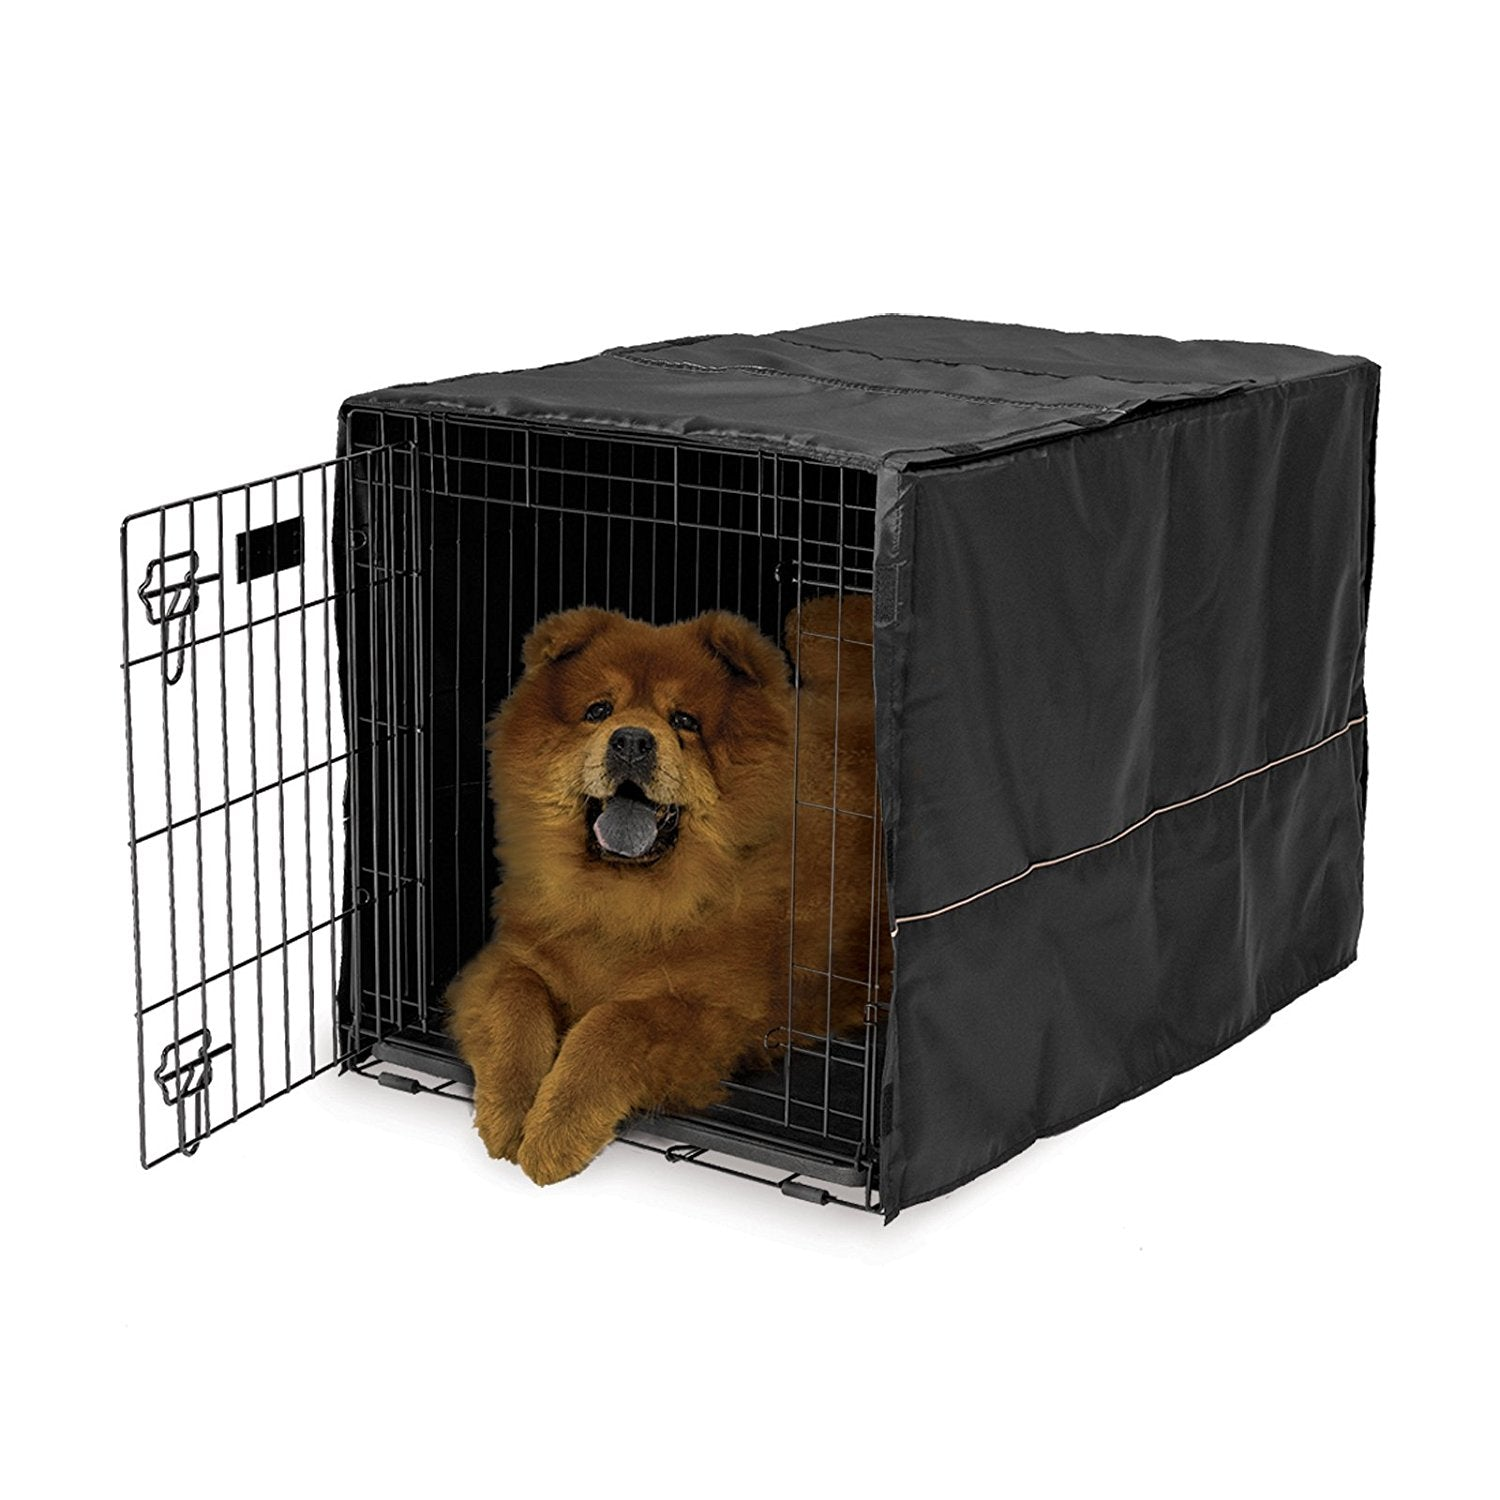 Midwest CVR-36 Quiet Time Pet Crate Cover from Midwest